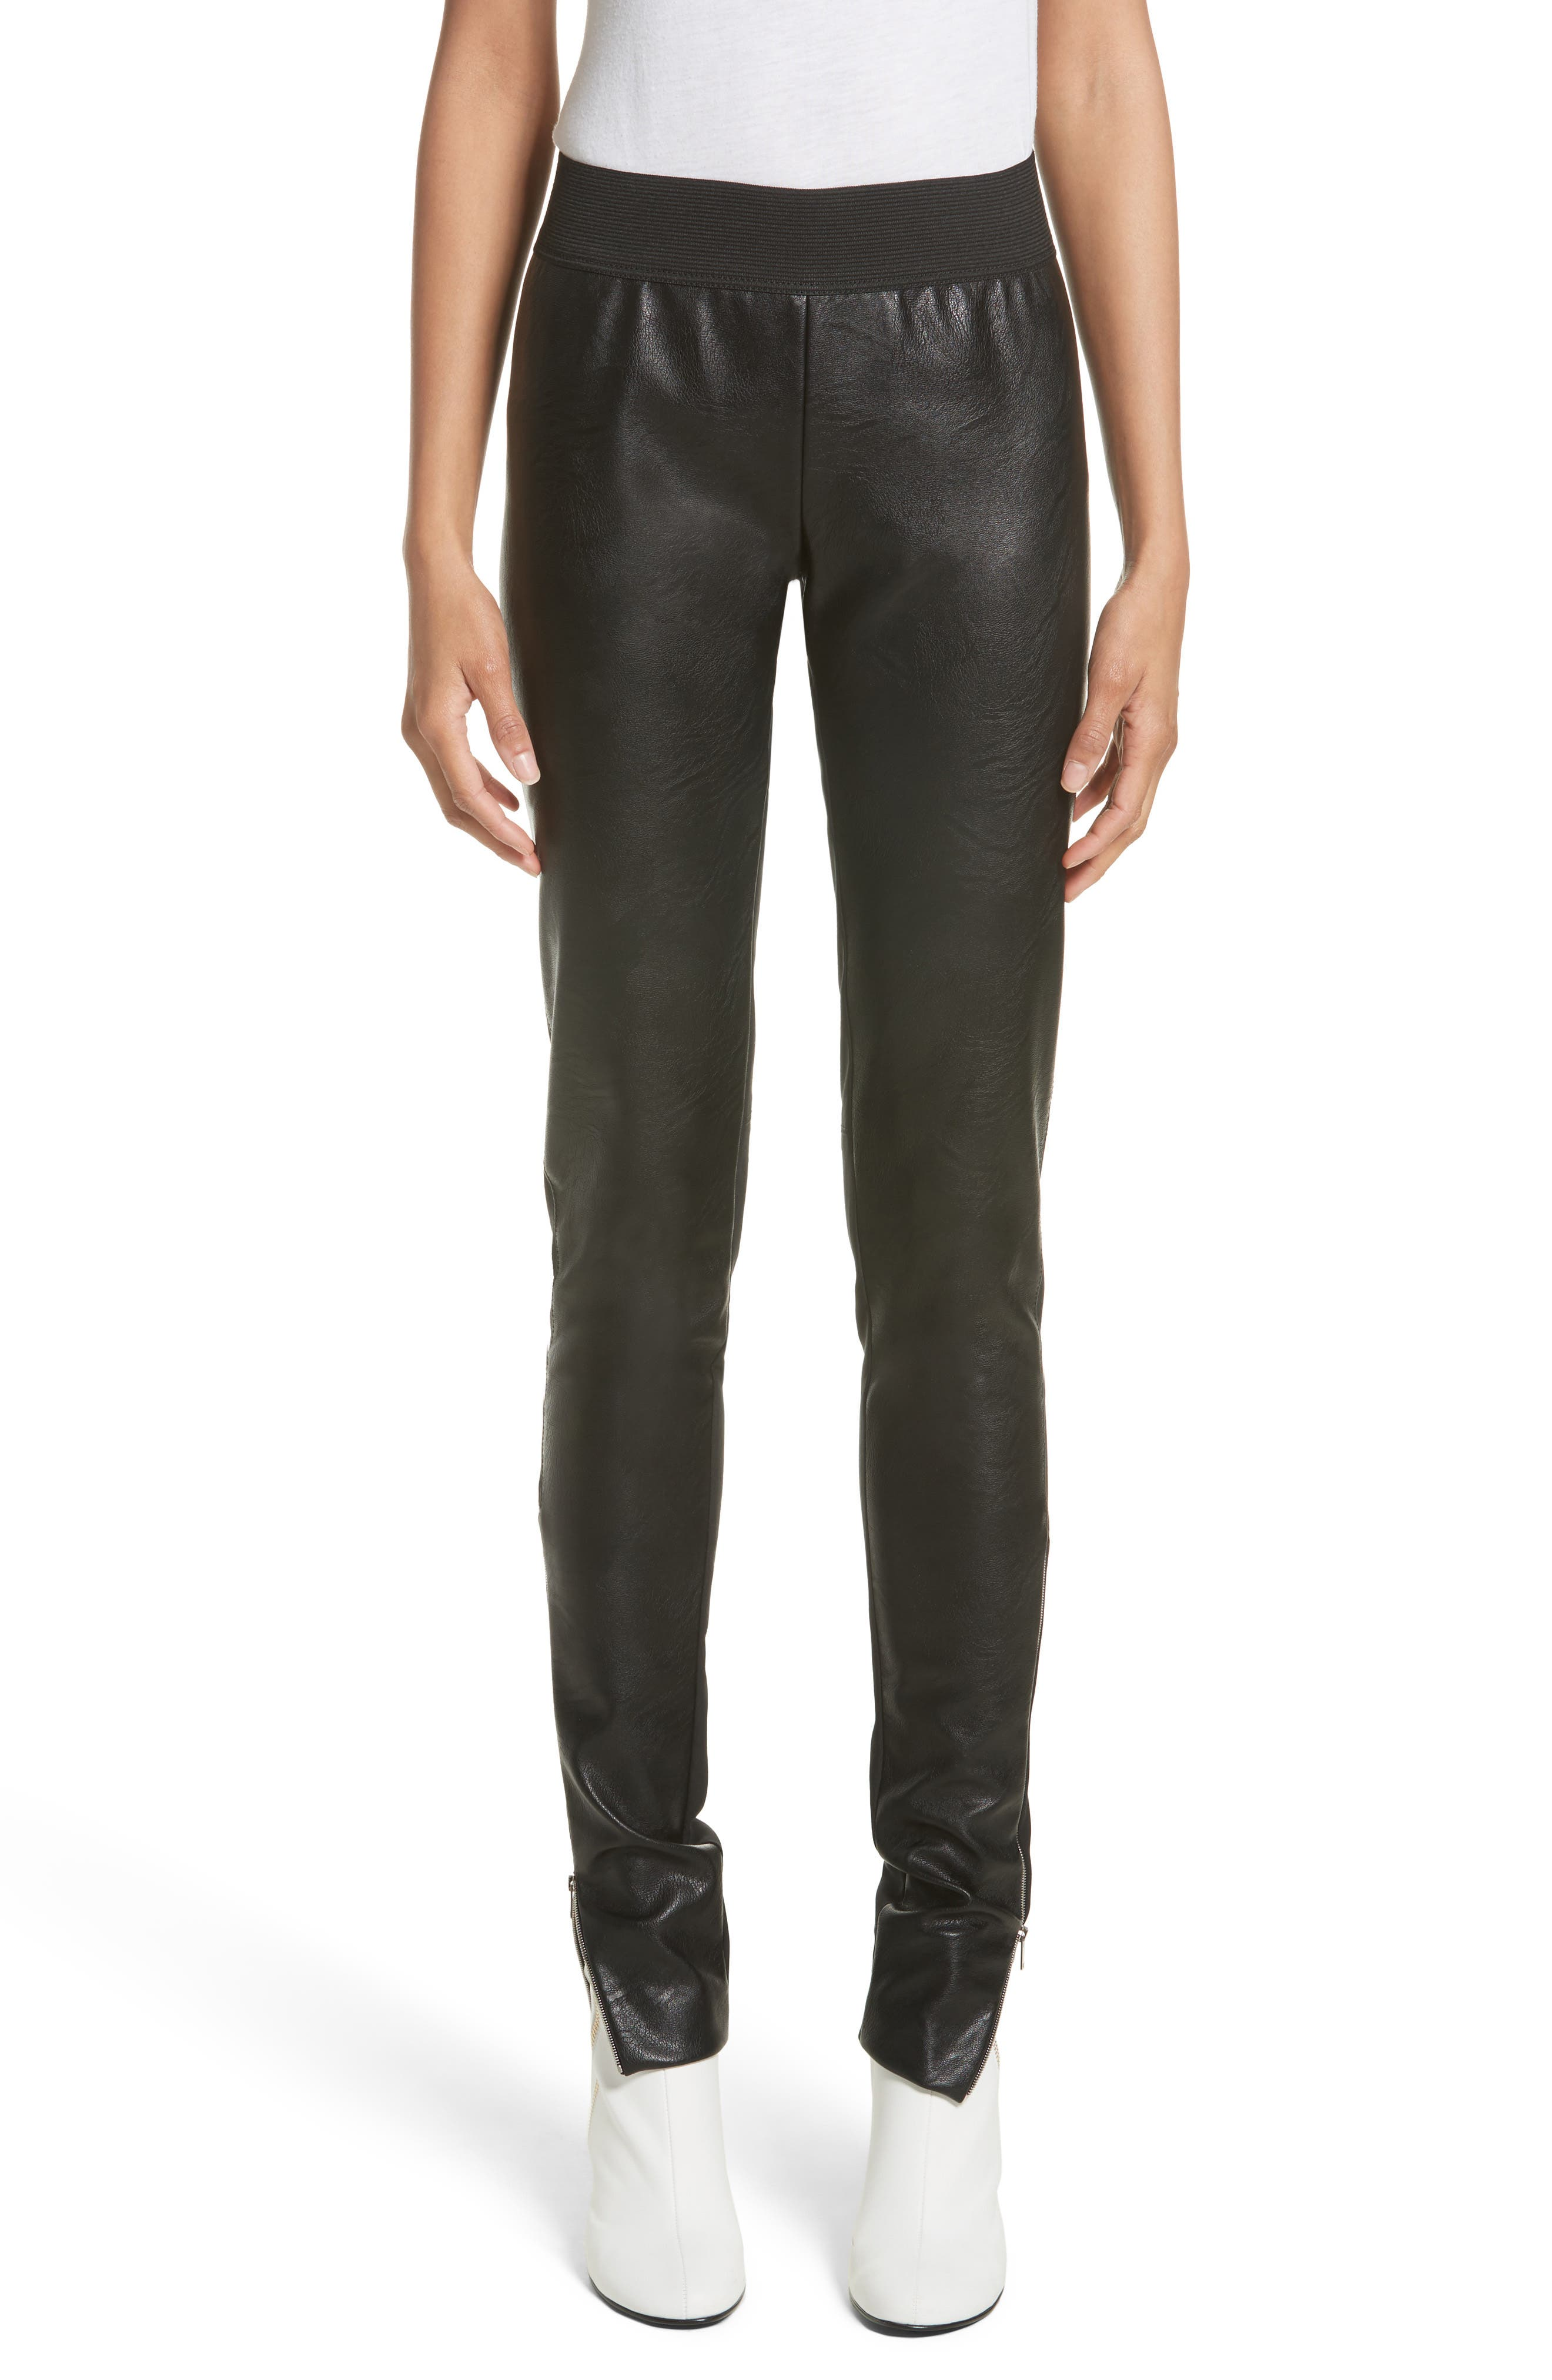 Stella McCartney Faux Leather Stretch Leggings